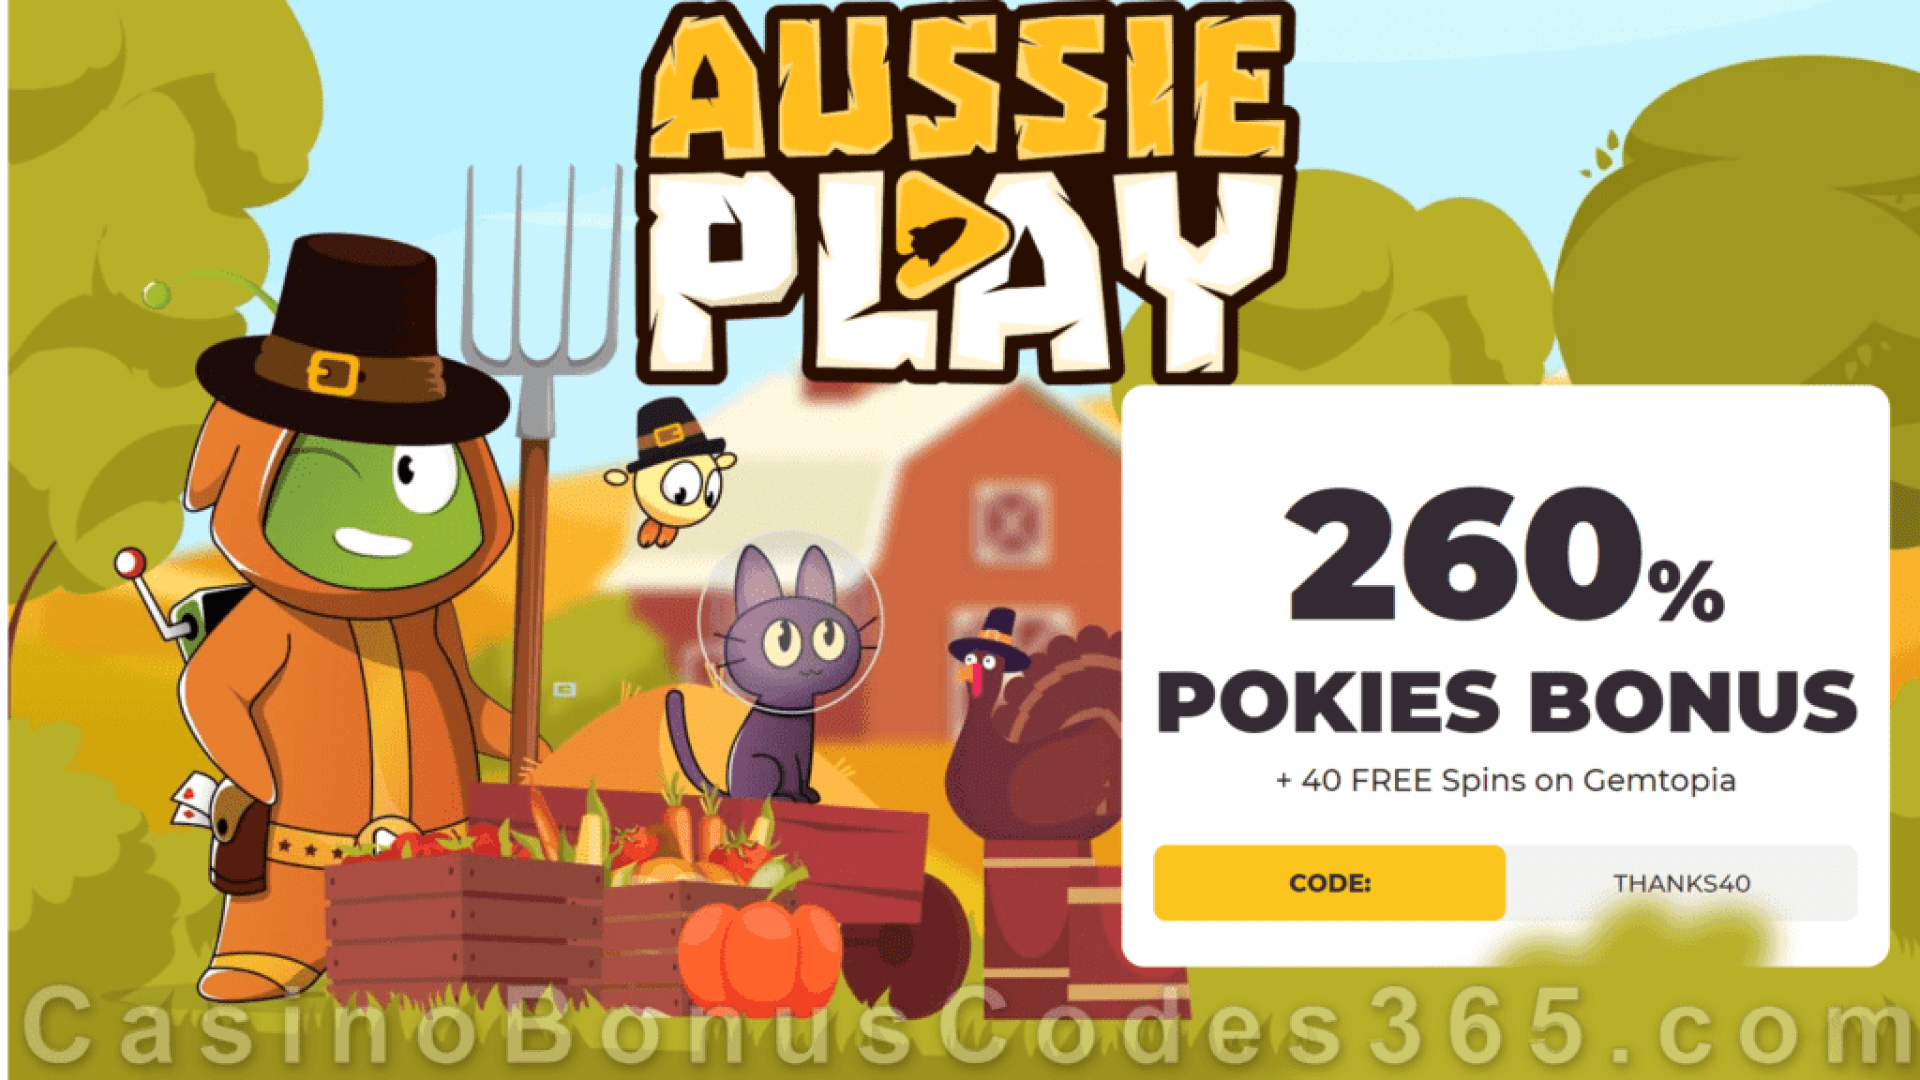 AussiePlay Casino 260% Match Pokies Bonus plus 40 FREE RTG Gemtopia Spins Special Thanksgiving Welcome Pack